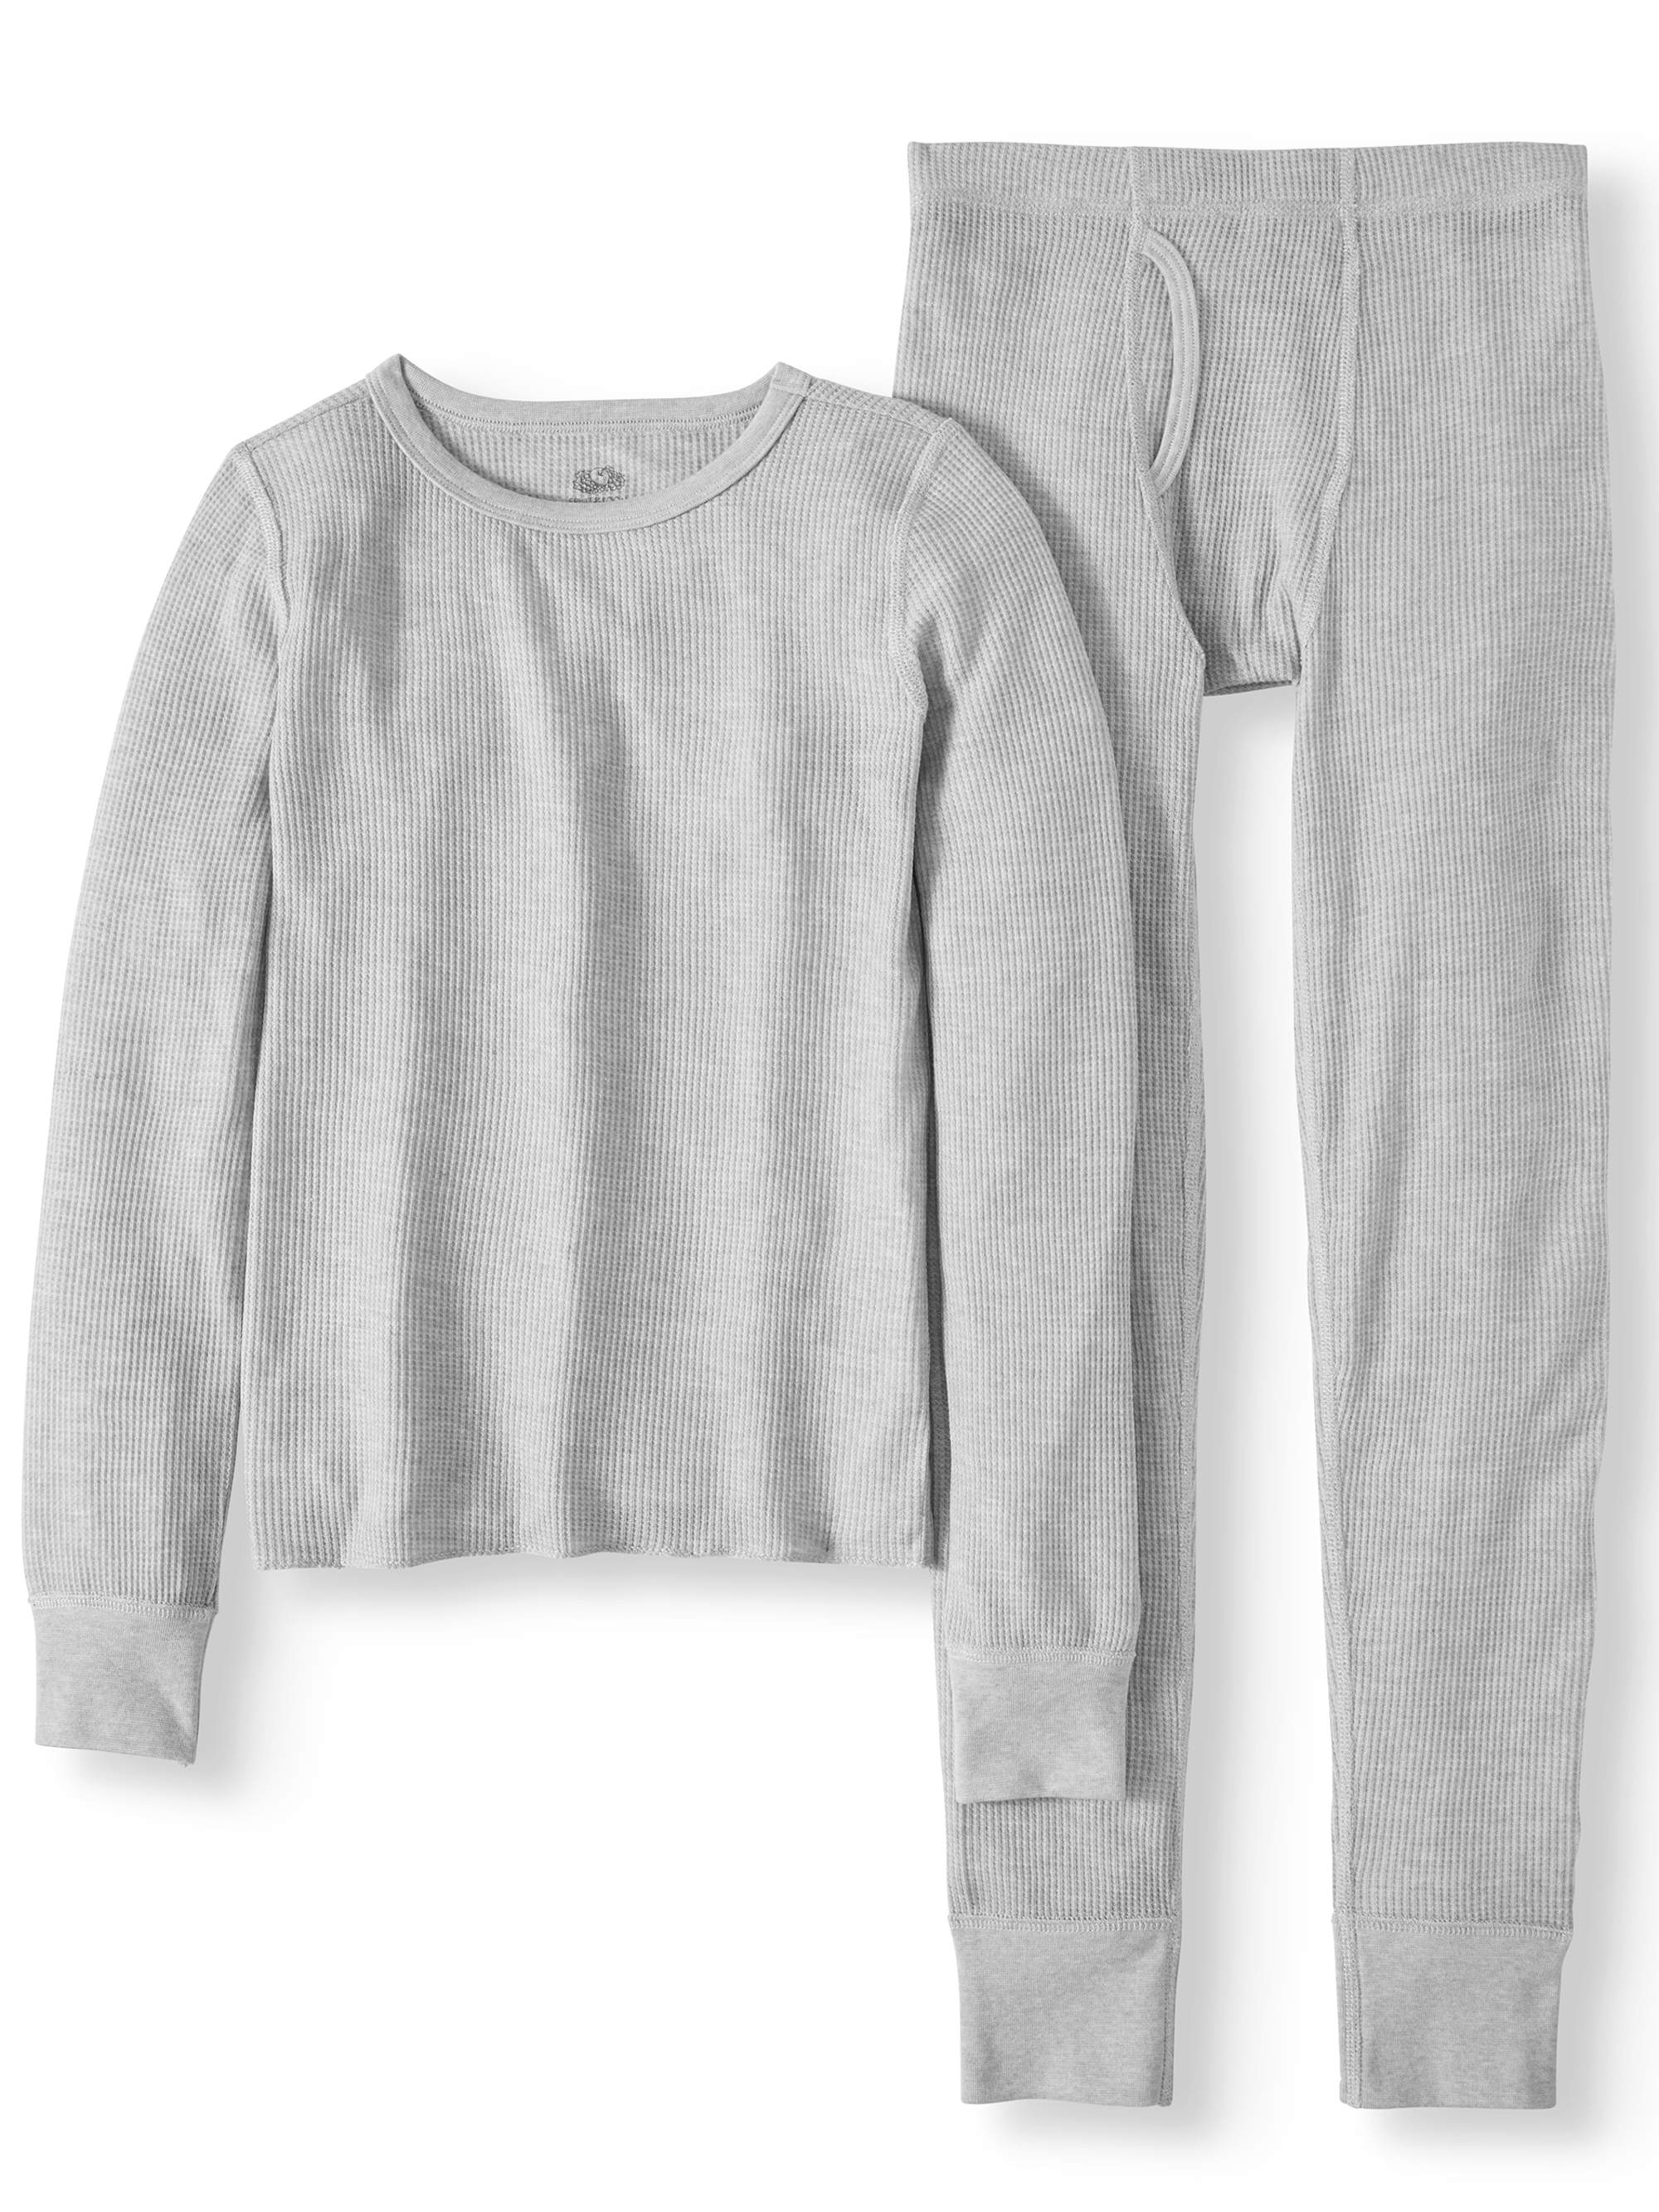 Fruit of the Loom Boys' Soft Waffle Thermal Underwear Set (Little Boy & Big Boy)